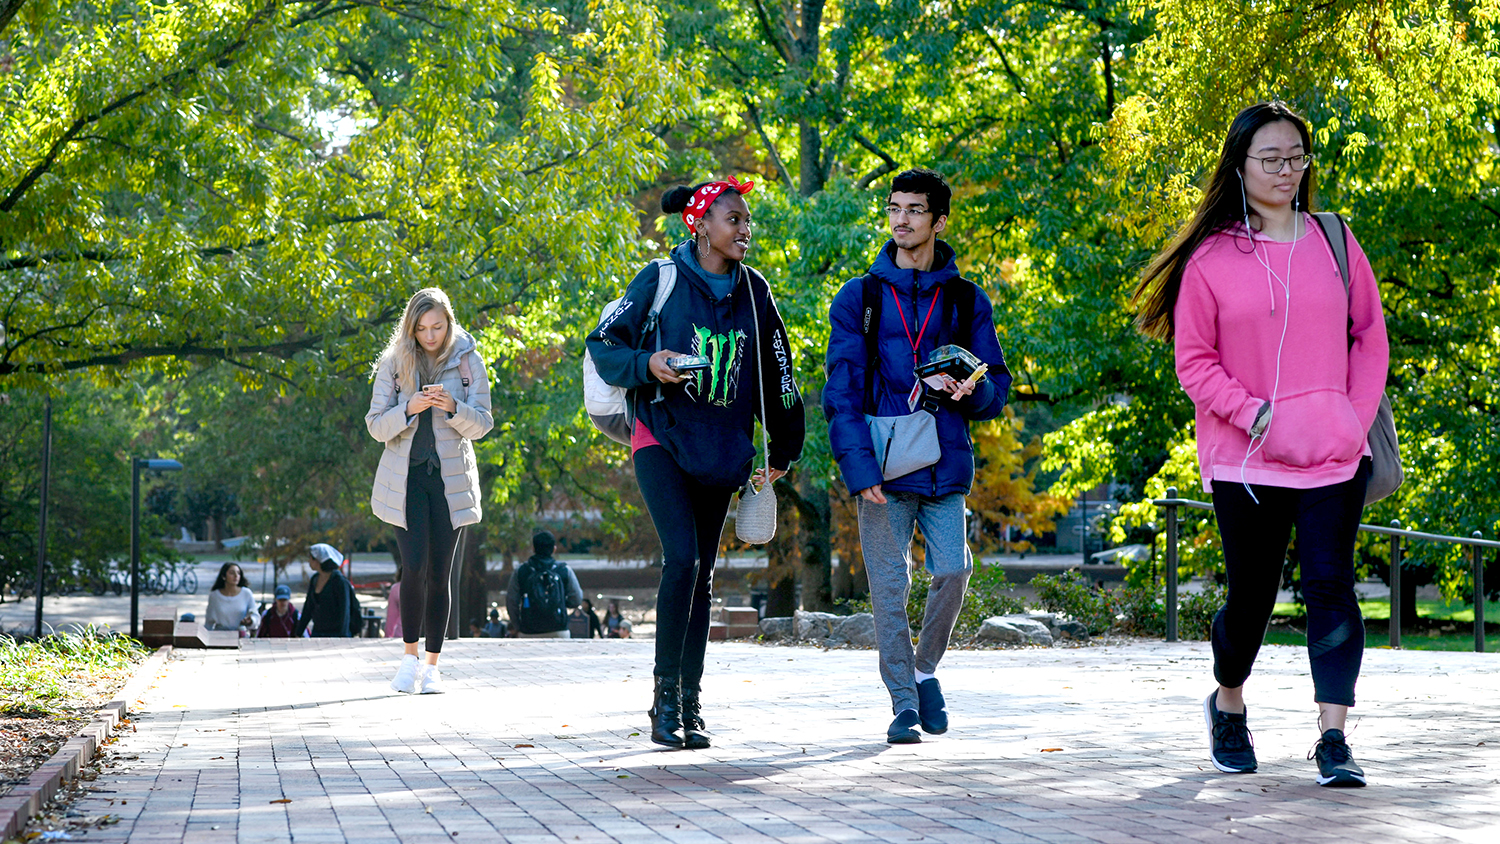 Students head from the Brickyard in the direction of Hillsborough Street on a pleasant November 2019 afternoon. Photo by Becky Kirkland.